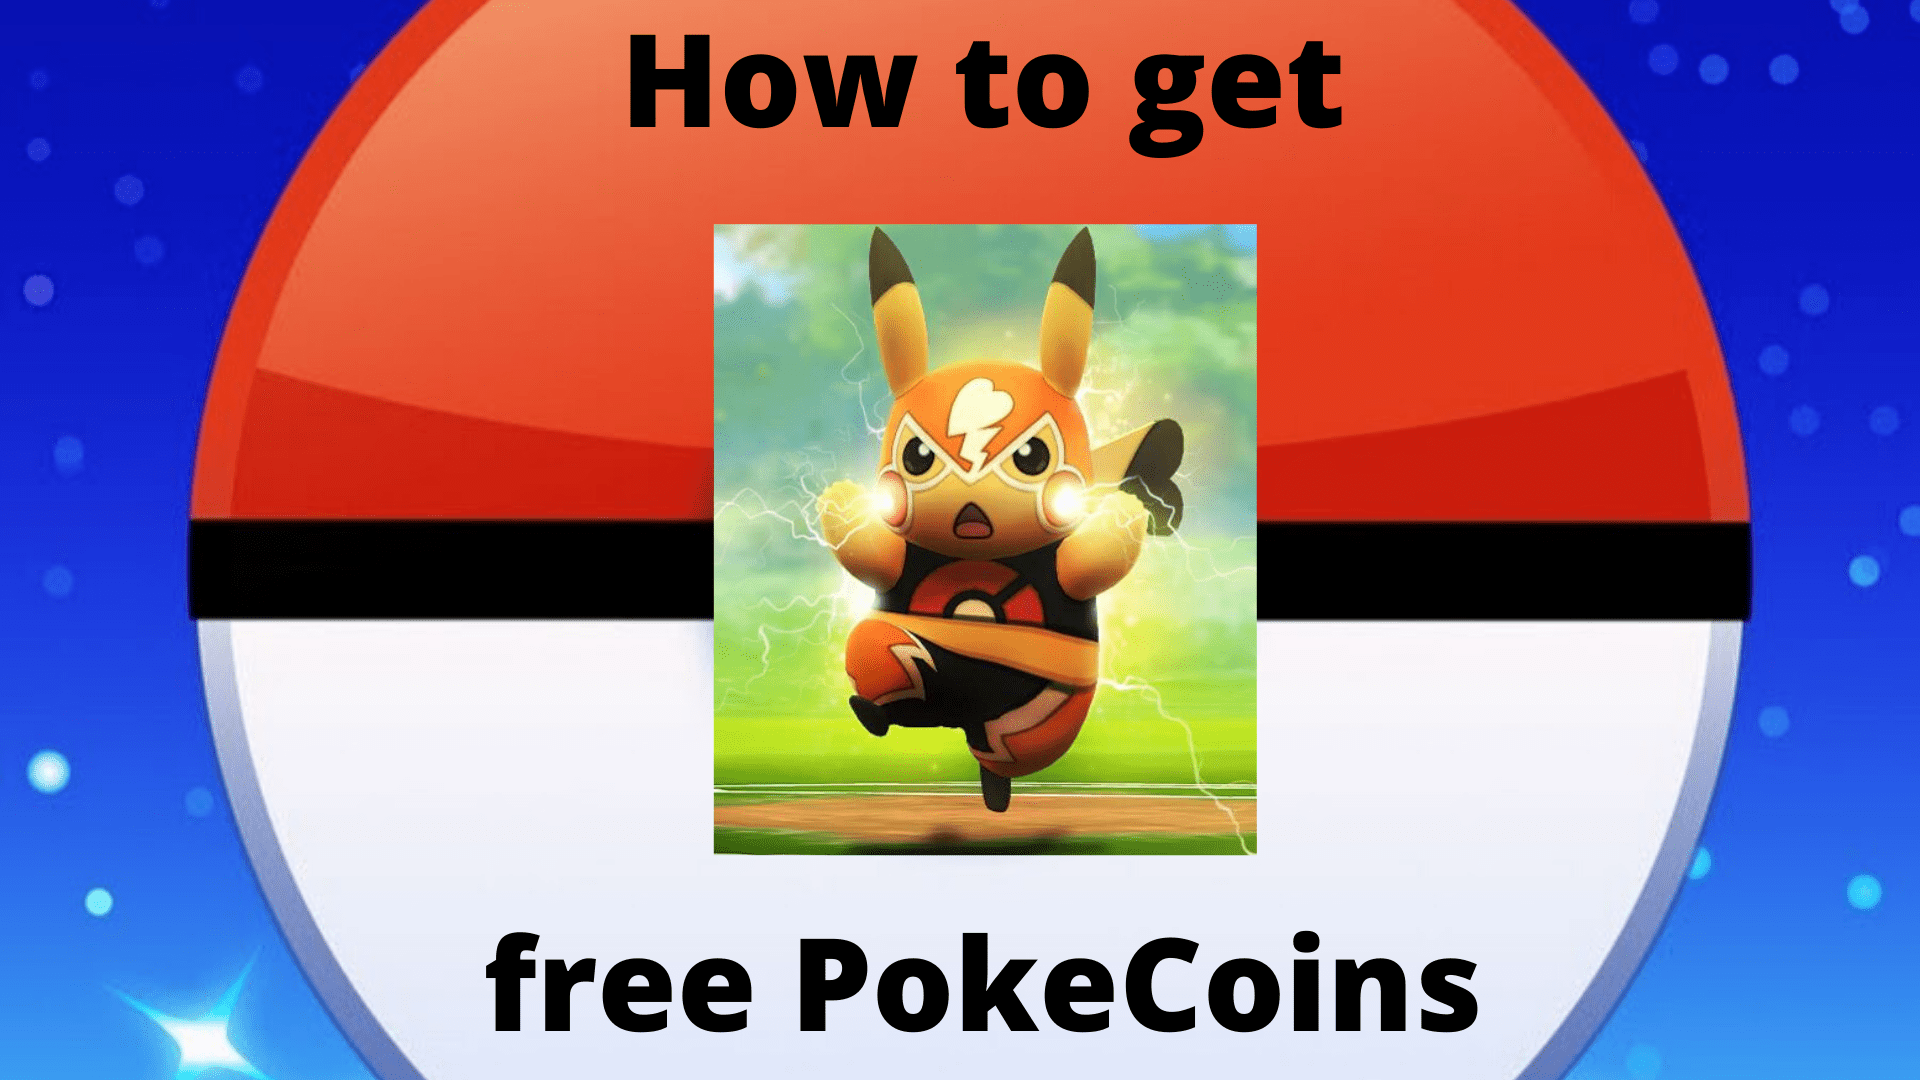 How to get free PokeCoins